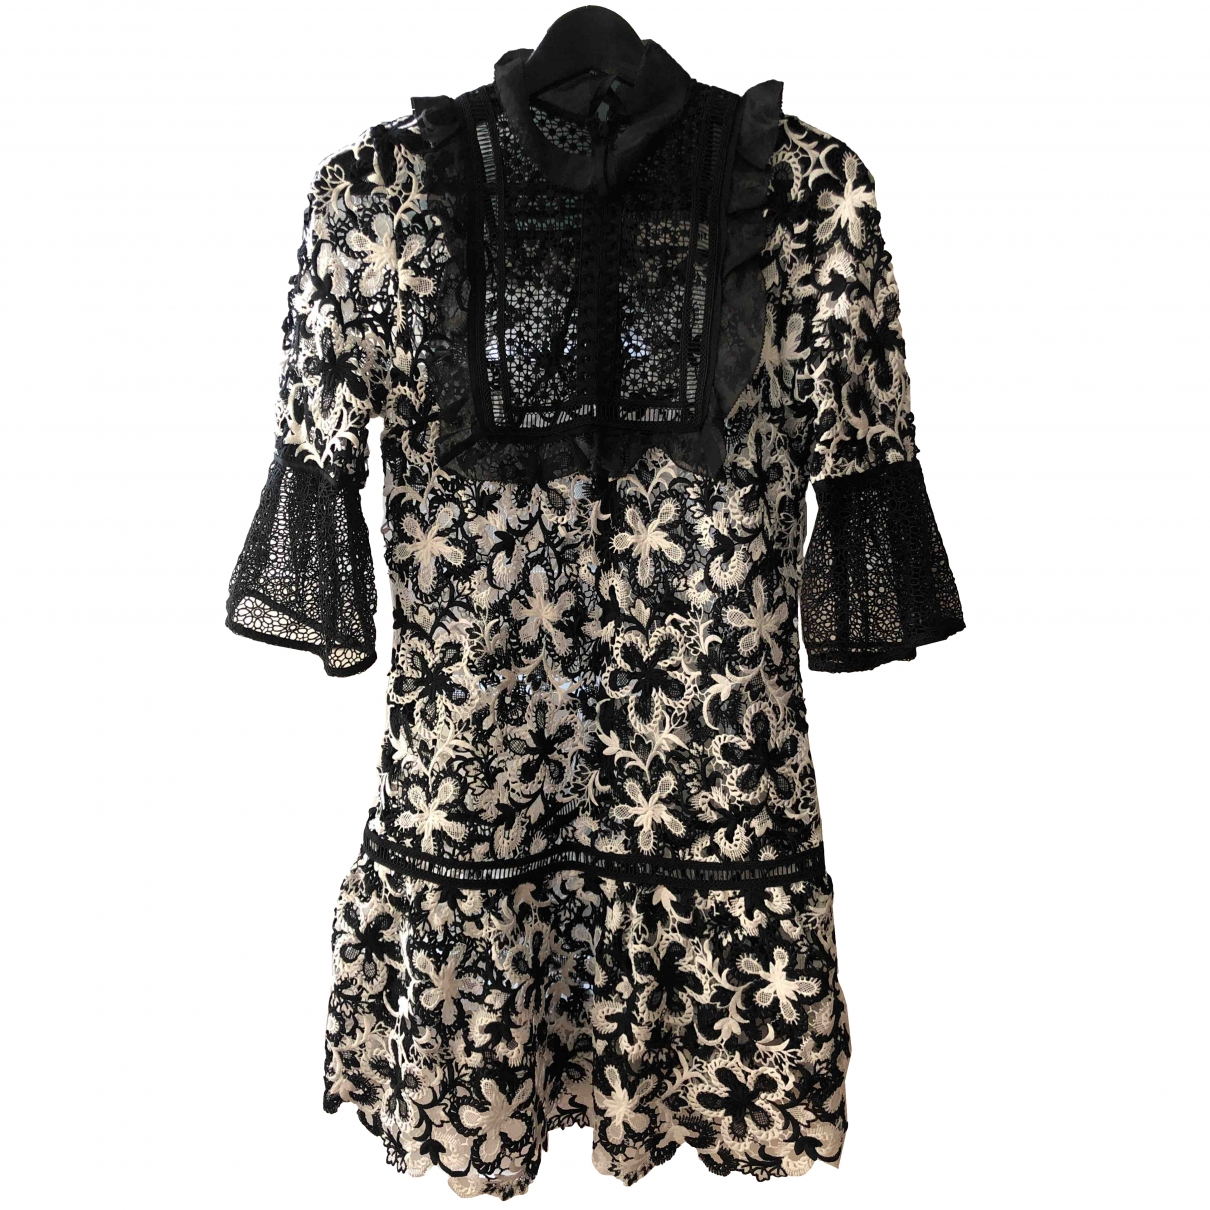 Self Portrait \N Black Lace dress for Women 8 UK